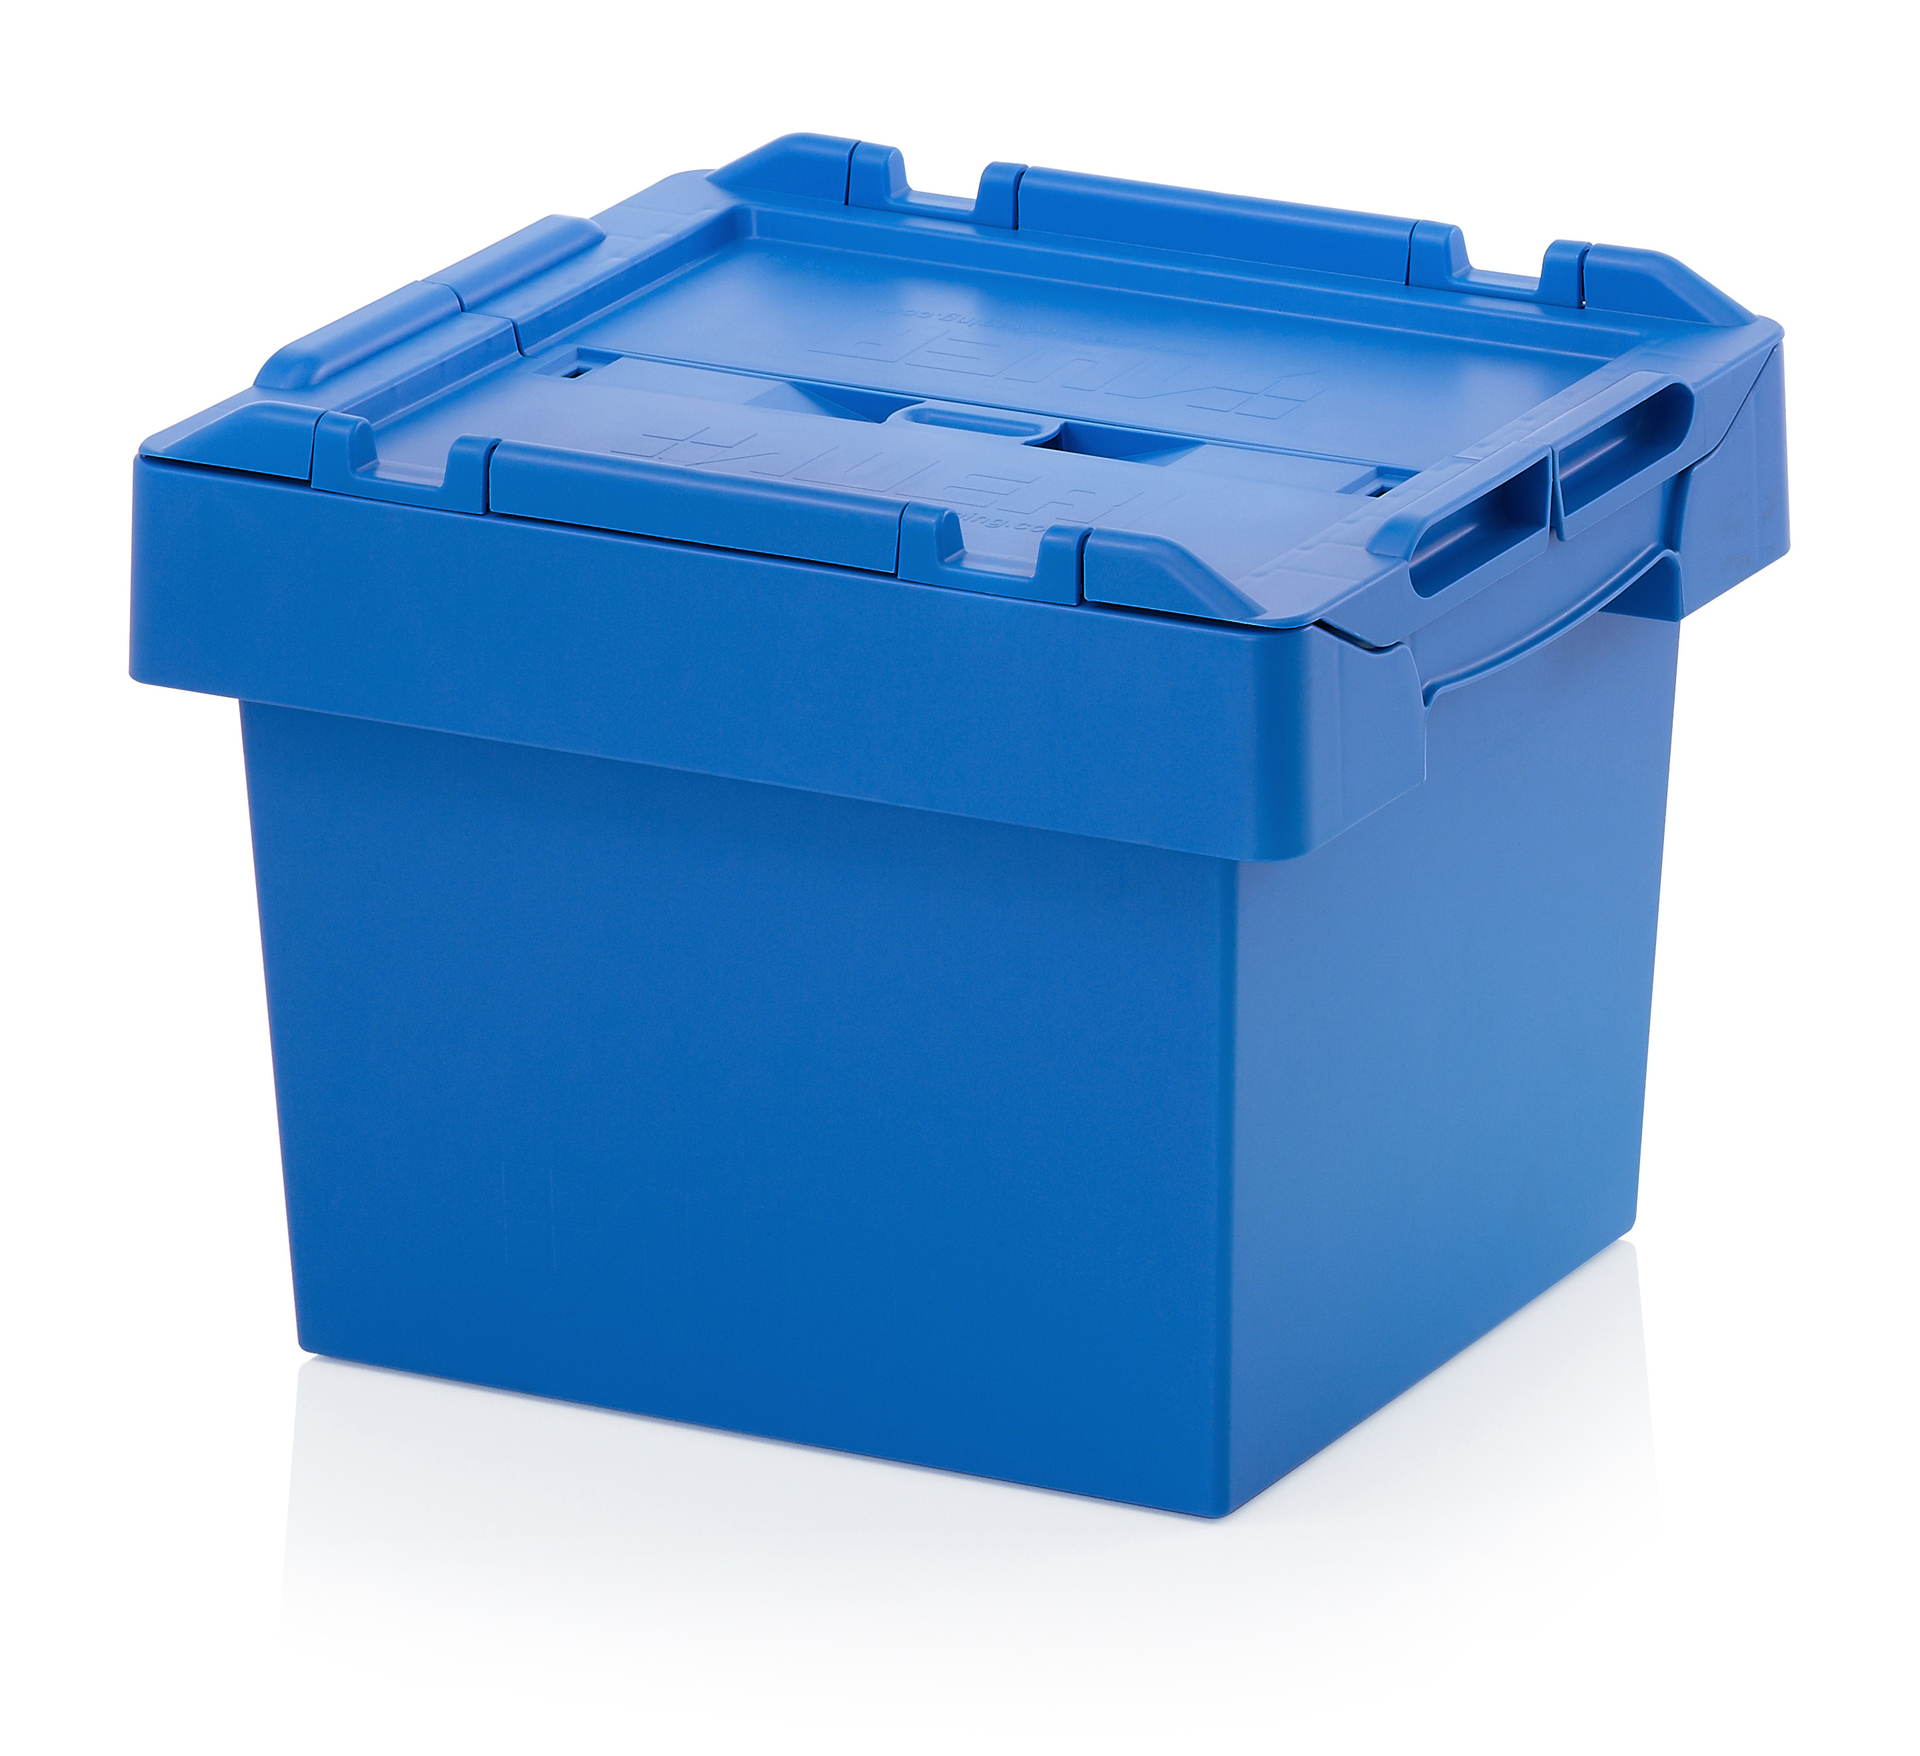 RC4270L_1 Reusable Containers - Plastic Mouldings Northern